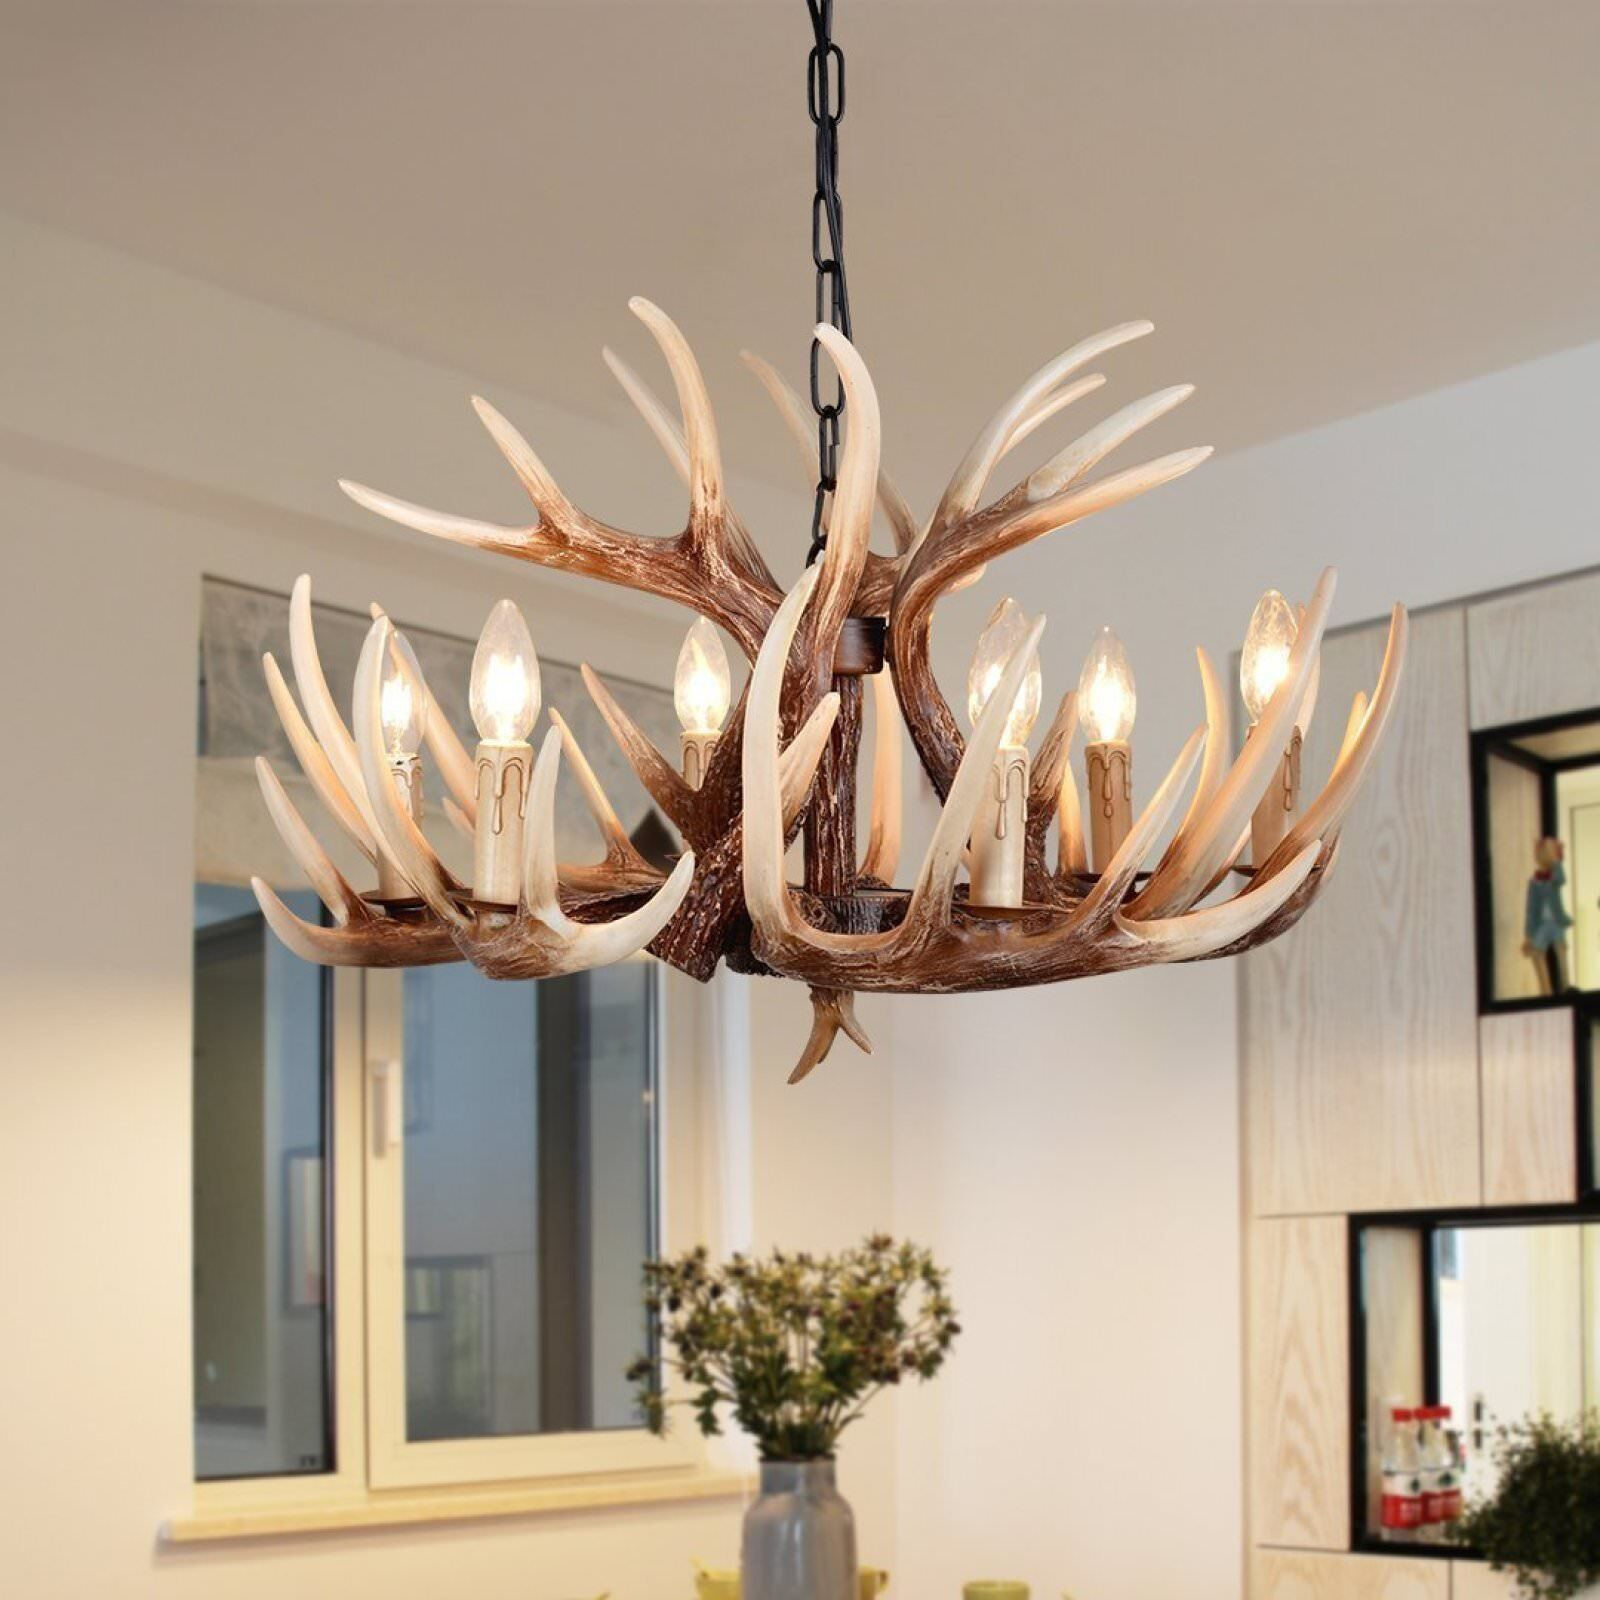 Details About Vintage Resin Antler Chandelier Deer Horn 6 Lights Retro Regular Living Room